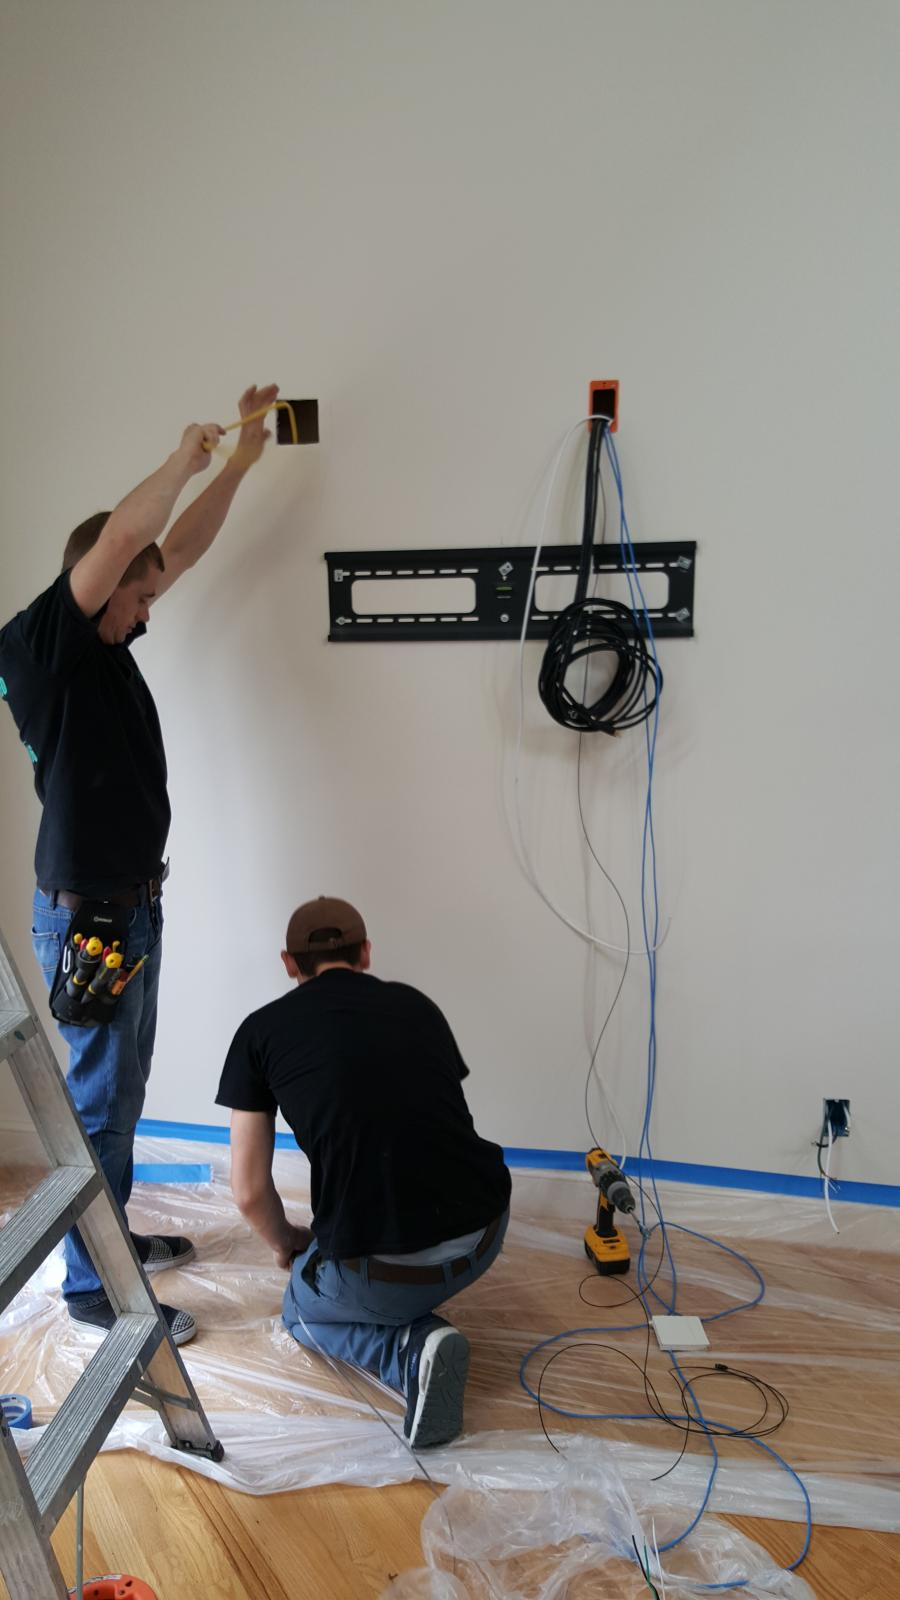 The technicians preparing a wall mount for the 70inch 4K Sony XBR TV - Home Theater Installation With 3.1 Sound Bar, In-wall Sub-Woofer